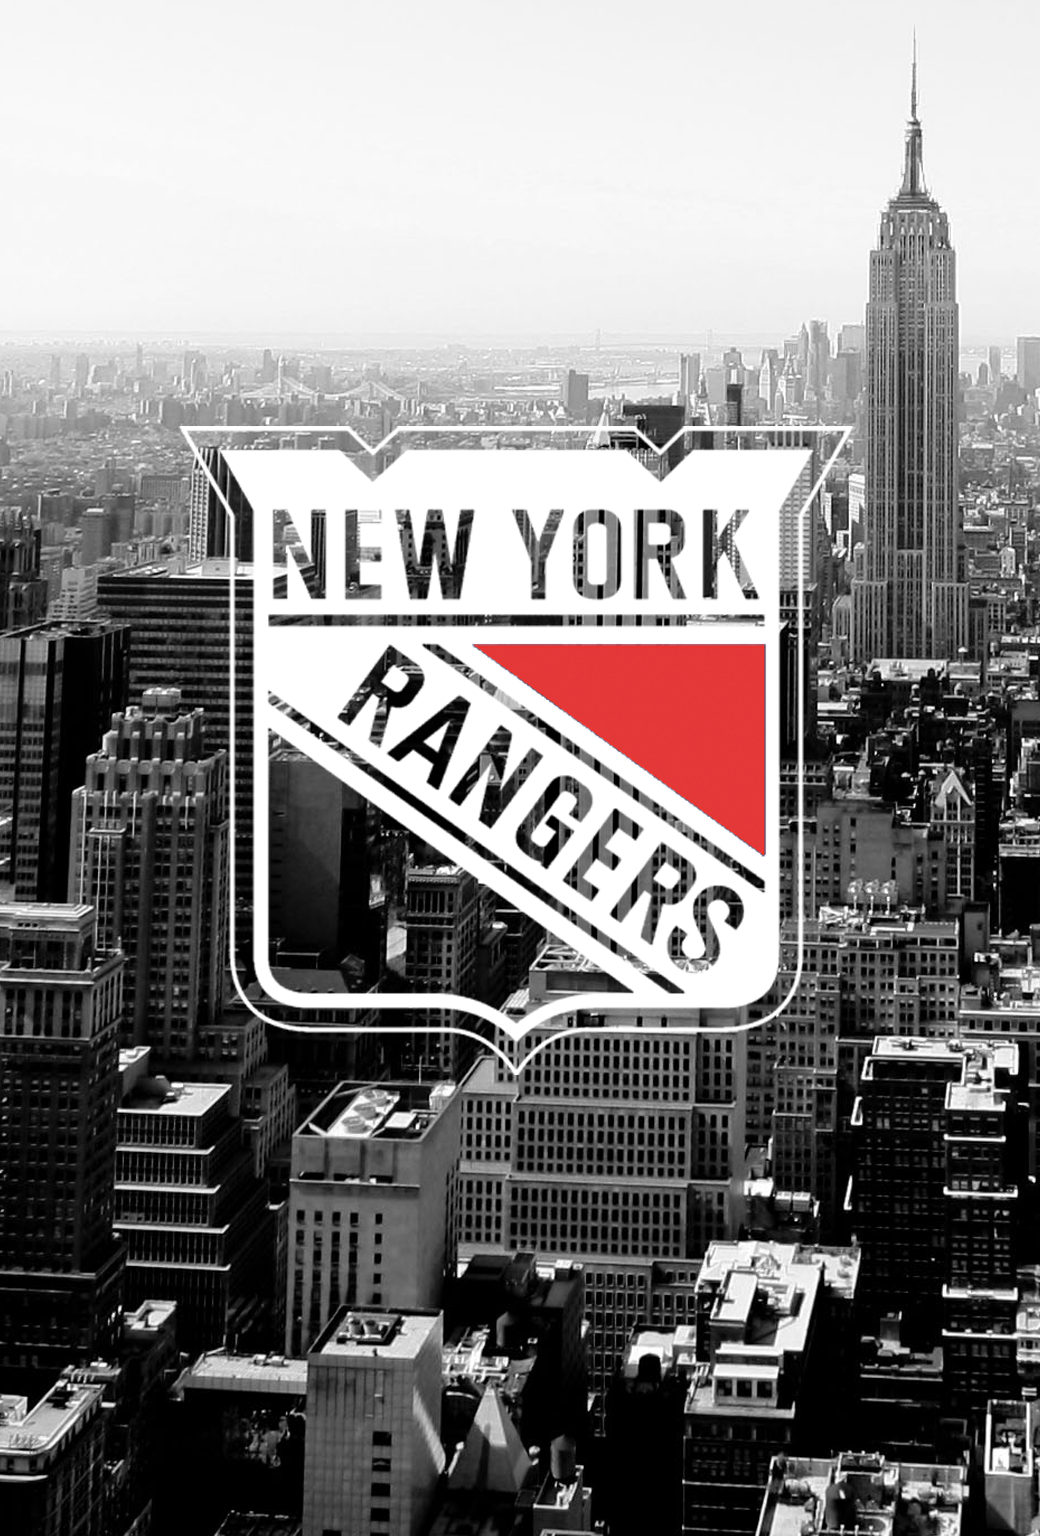 New York Rangers NYC skyline mobile wallpaper iPhone 4 or iPhone 5s 1040x1536